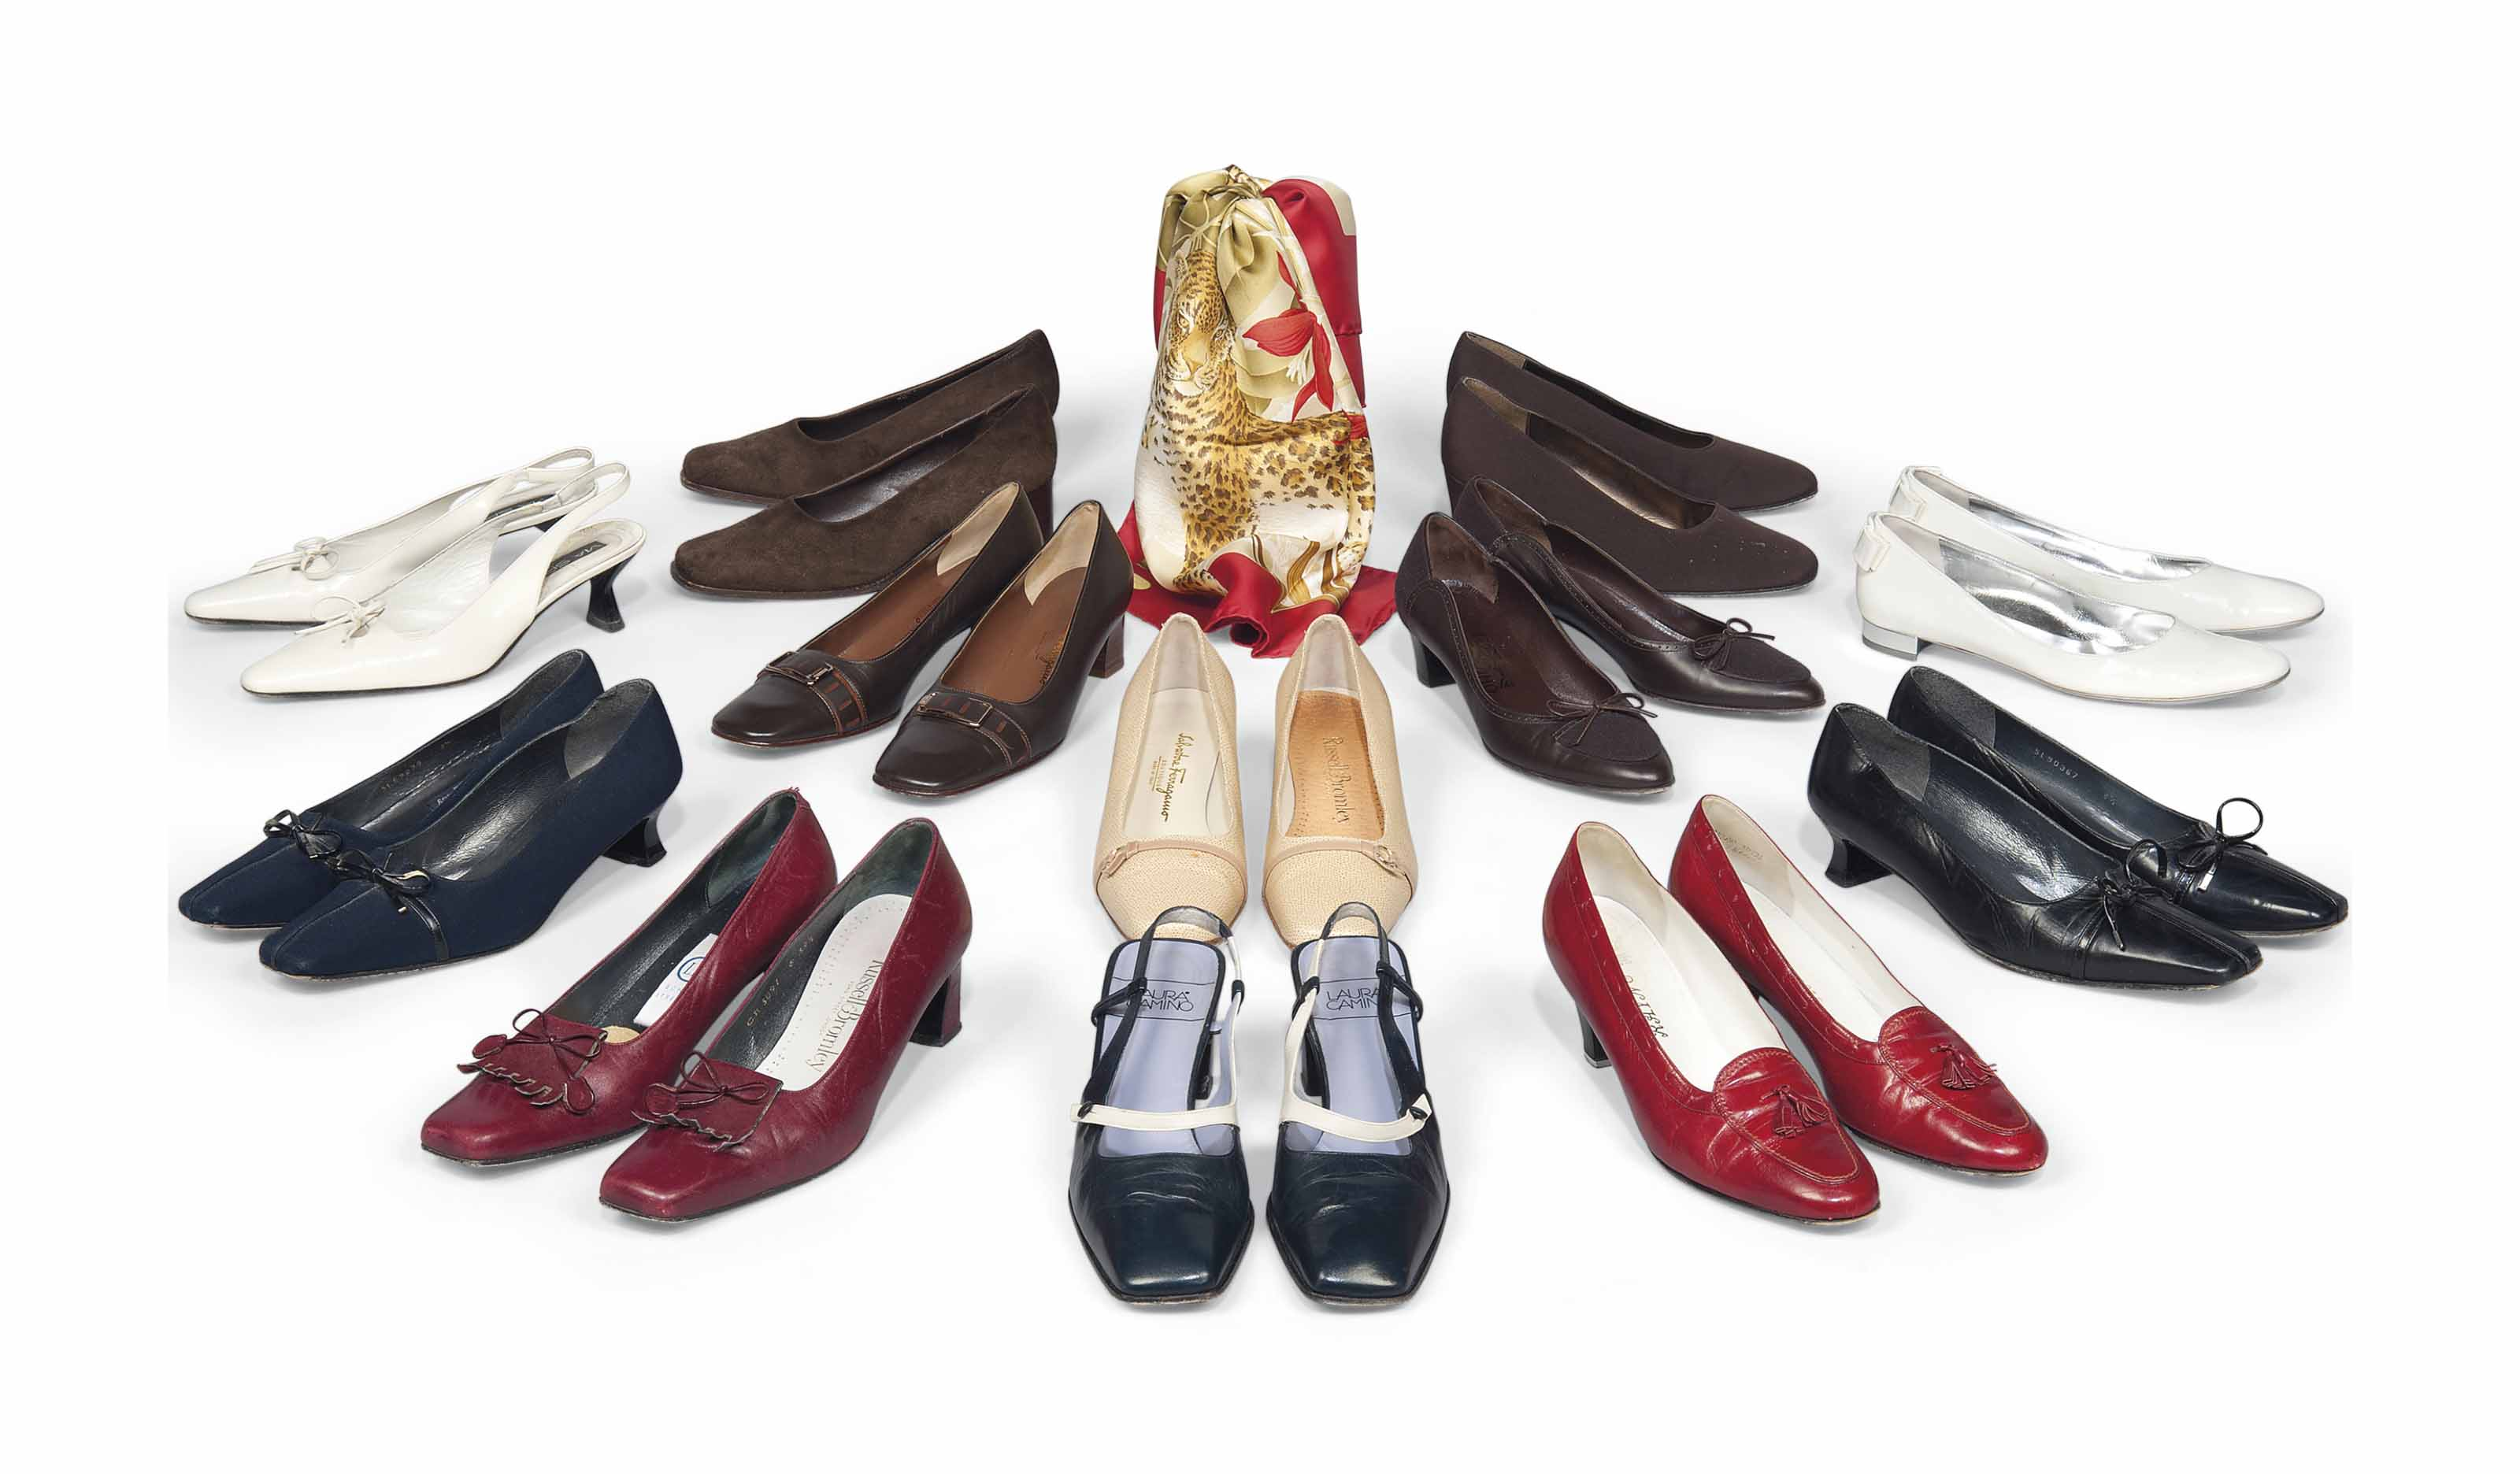 TWELVE PAIRS OF DAY SHOES